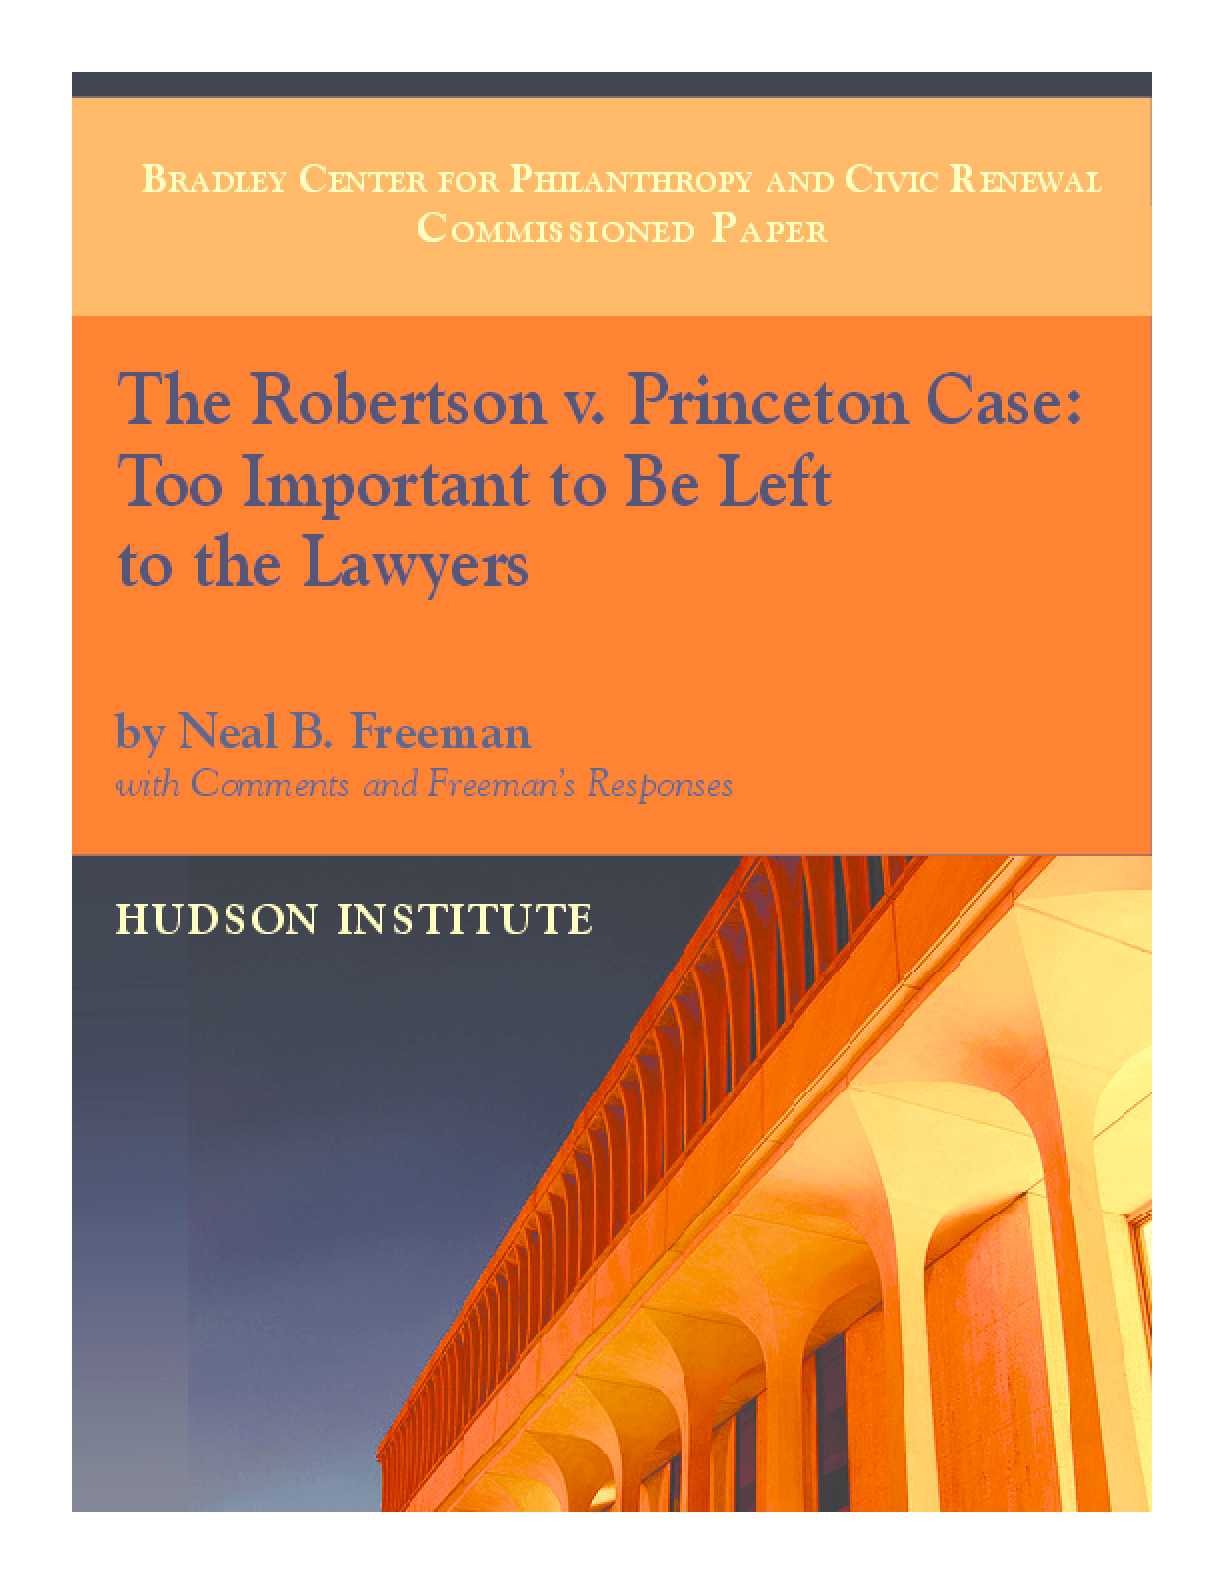 The Robertson v. Princeton Case: Too Important to Be Left to the Lawyers